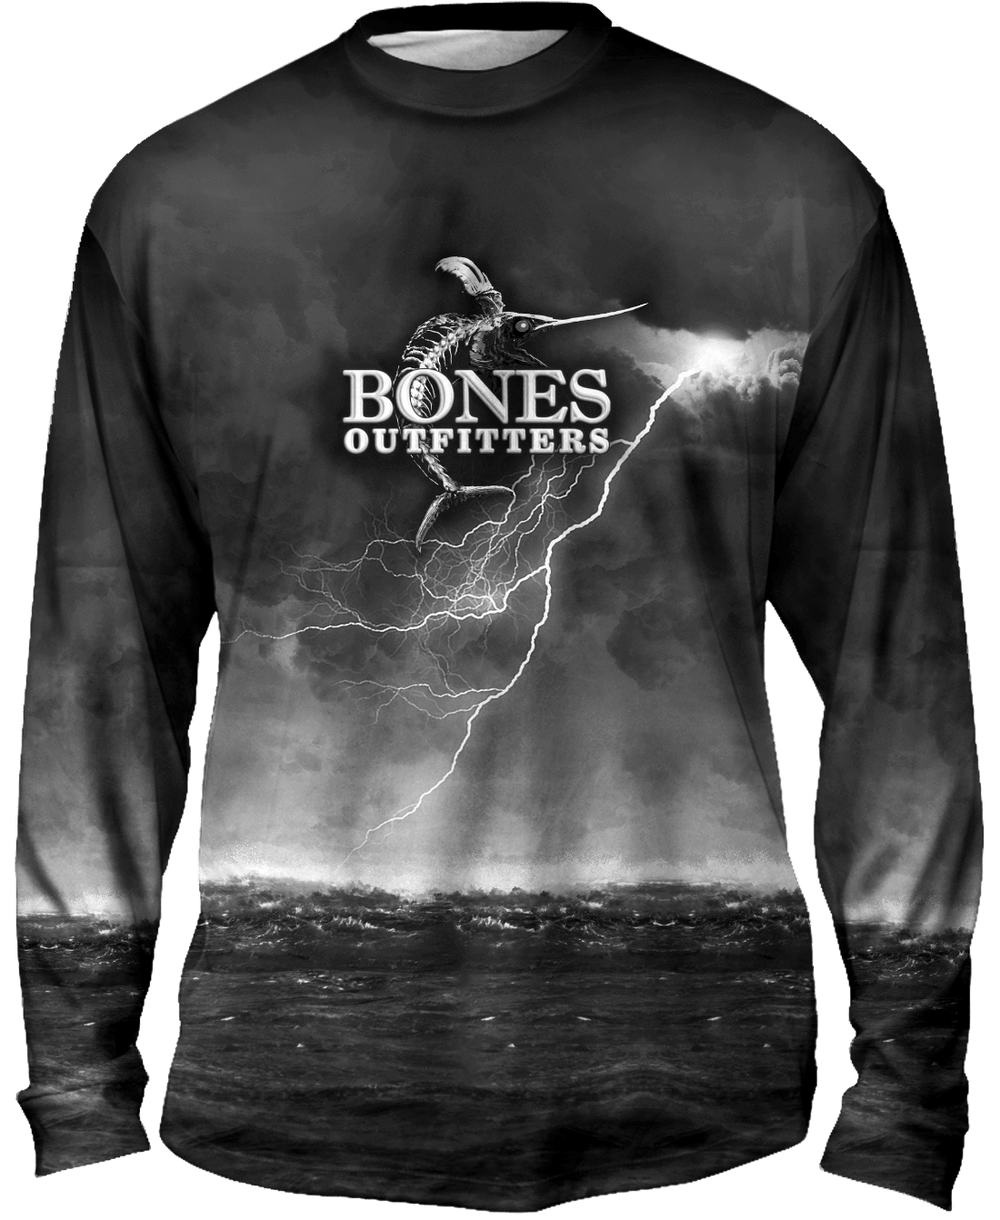 Stormy Skys Long Sleeve - Bones Outfitters